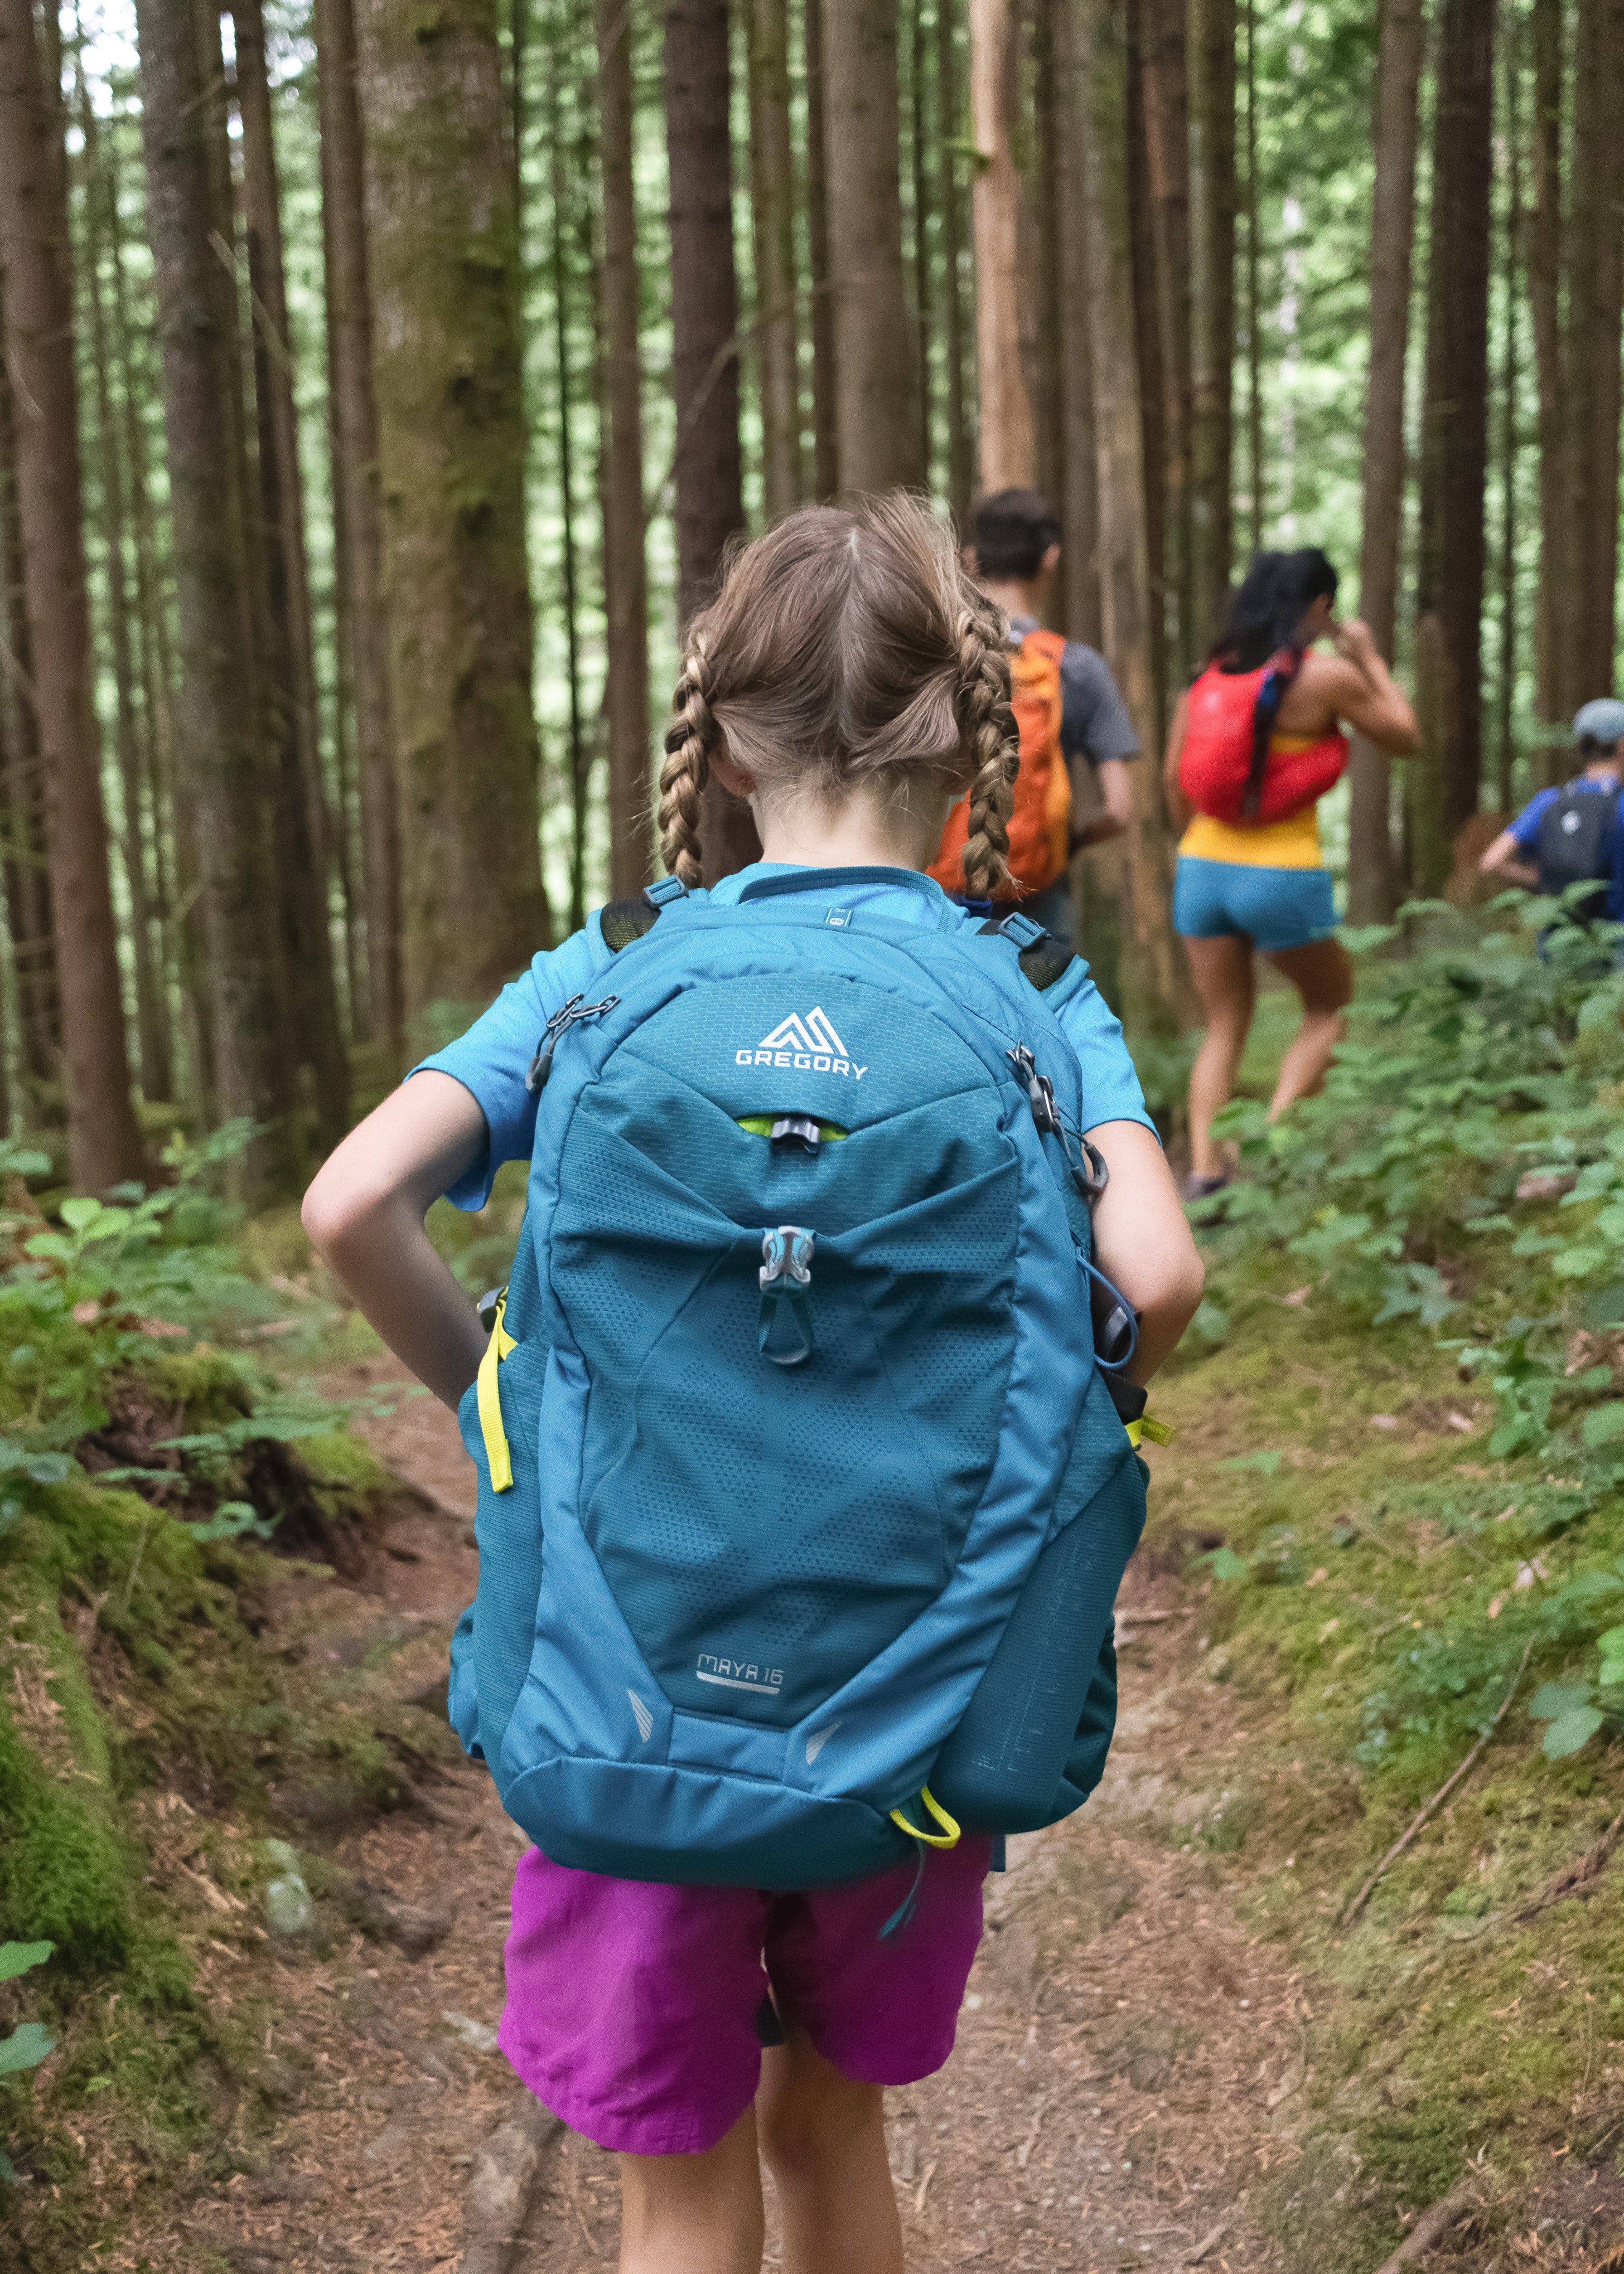 Girl with a blue backpack | Source: Unplash